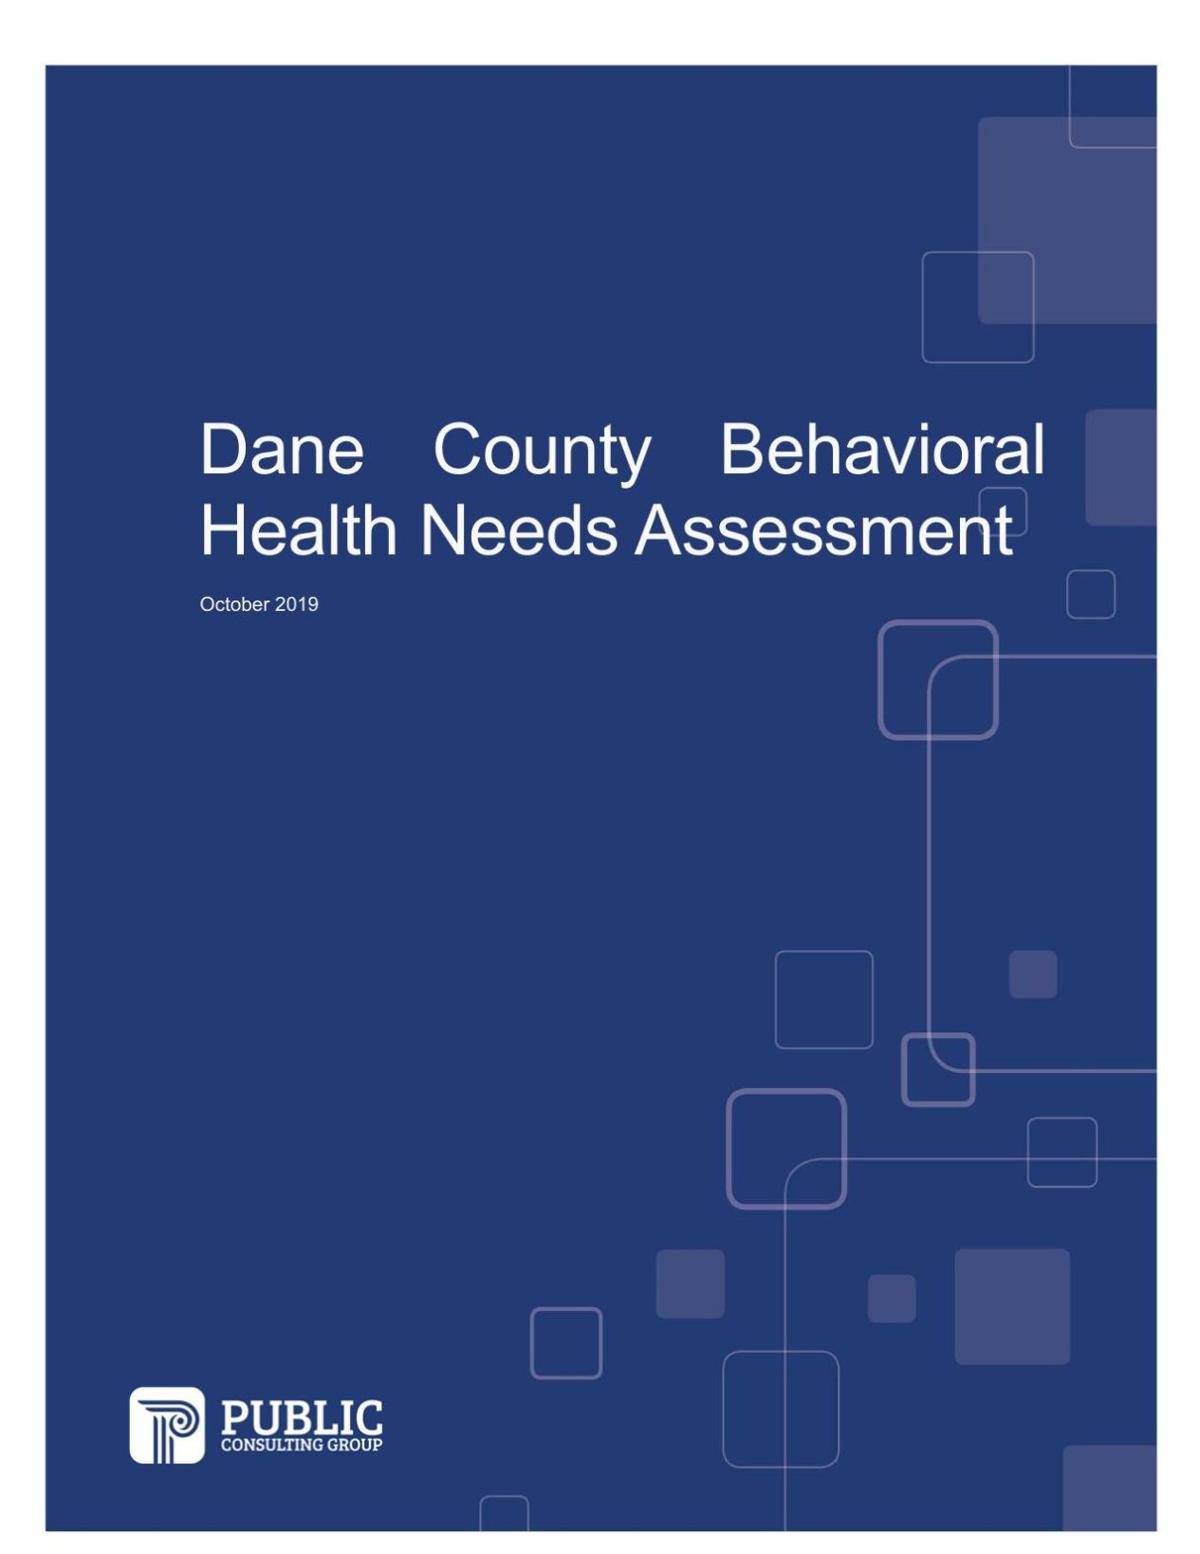 Dane County mental health survey